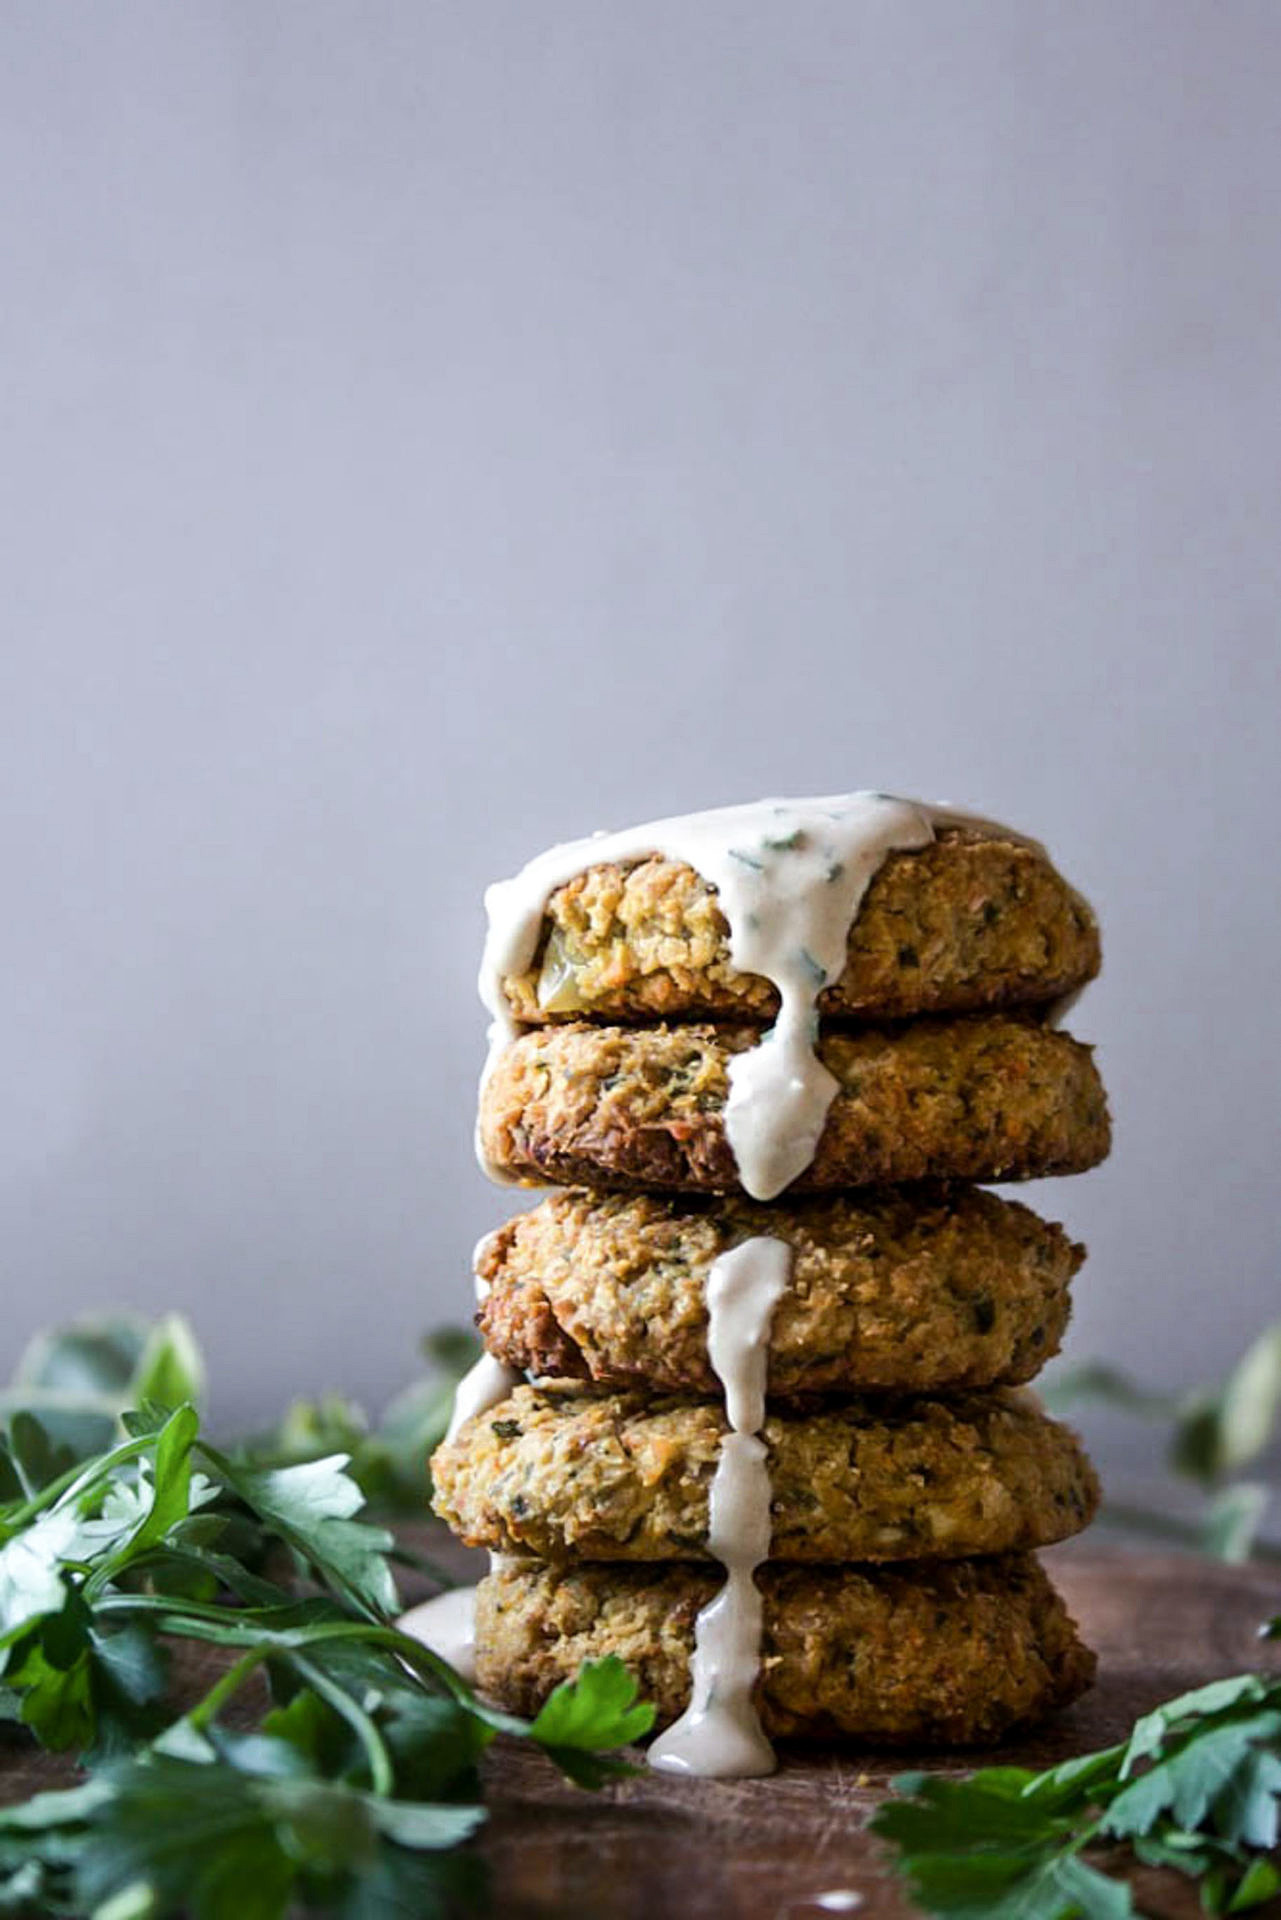 This Low FODMAP Falafel is crispy on the outside and soft on the inside, flavorful, satisfying and easy to digest! Plus completely vegan and gluten-free.